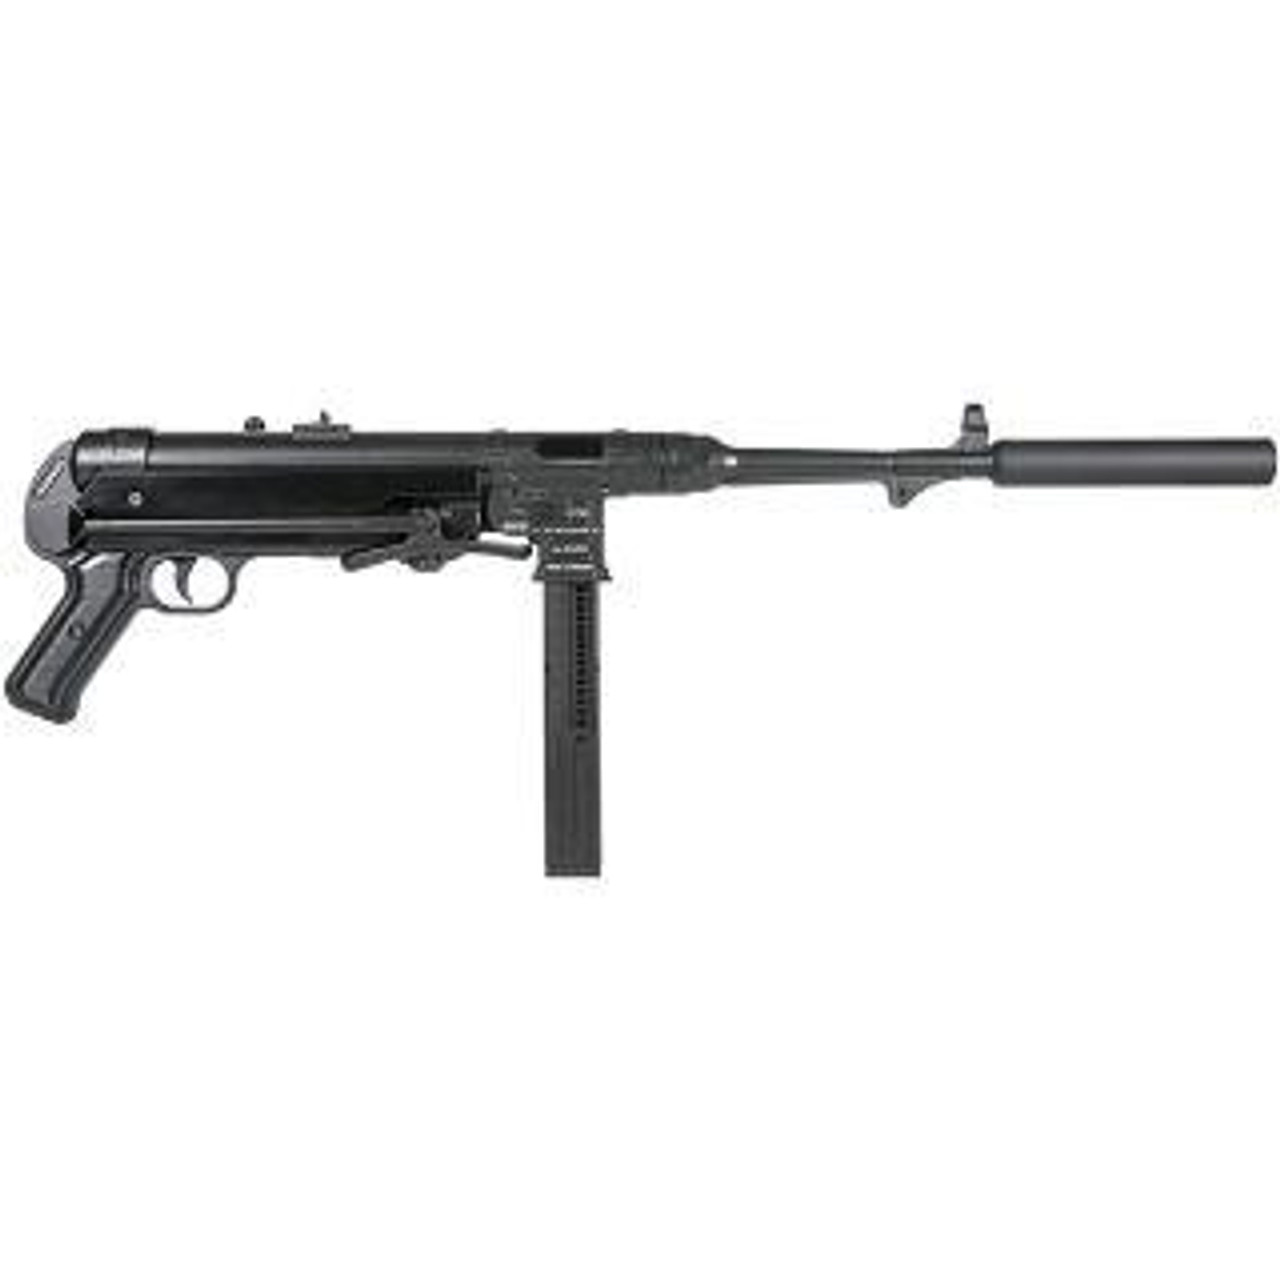 ATI GSG MP-40 CALIFORNIA LEGAL - .22LR